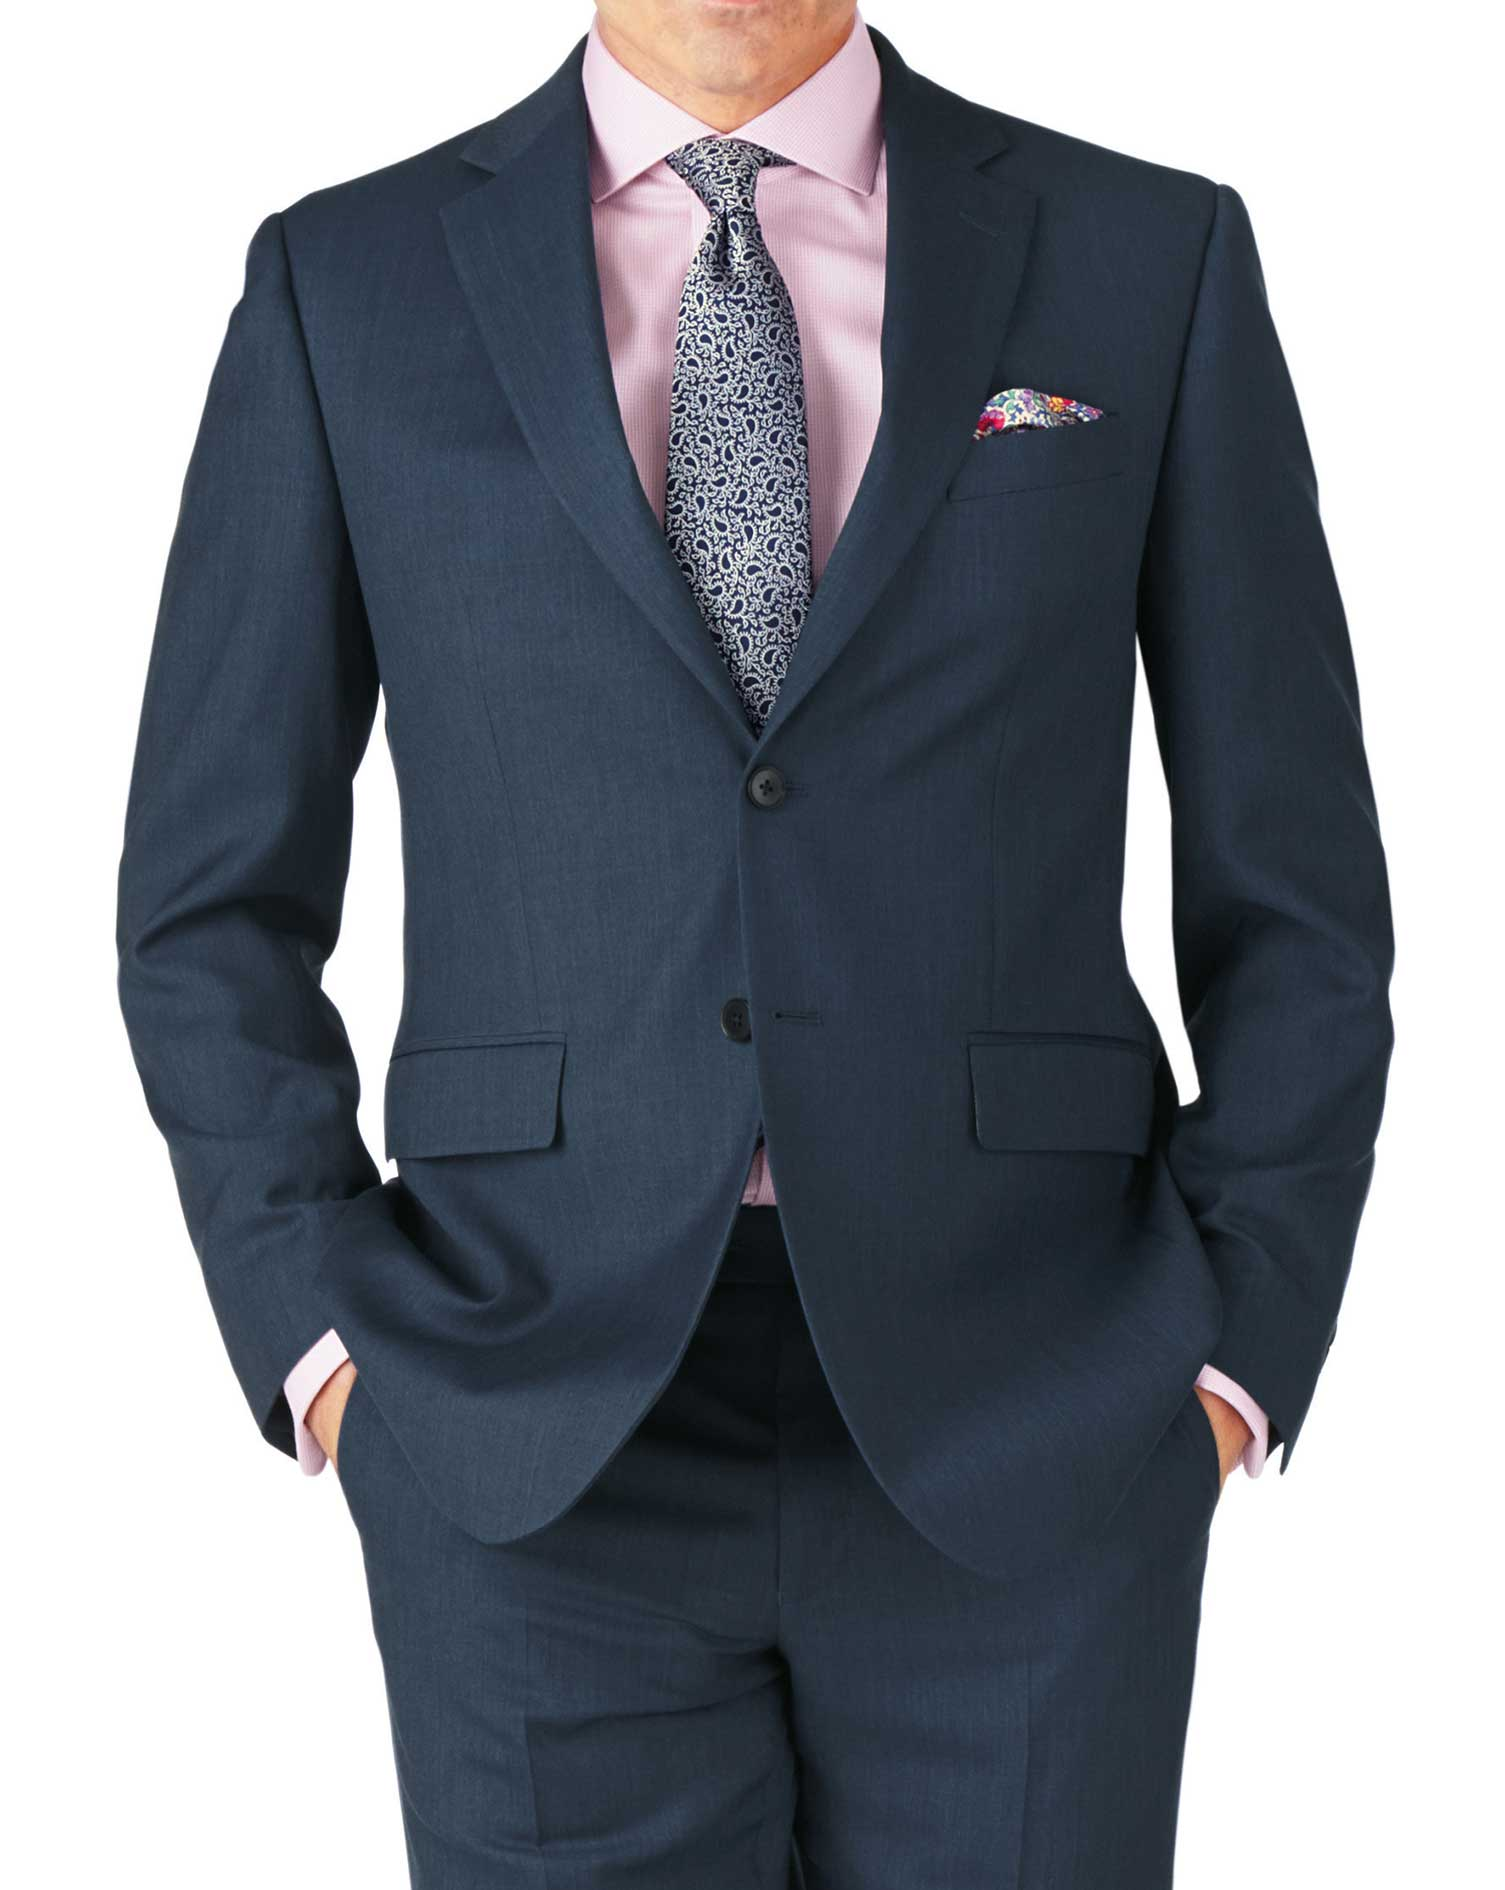 Blue Classic Fit Twill Business Suit Wool Jacket Size 36 Regular by Charles Tyrwhitt